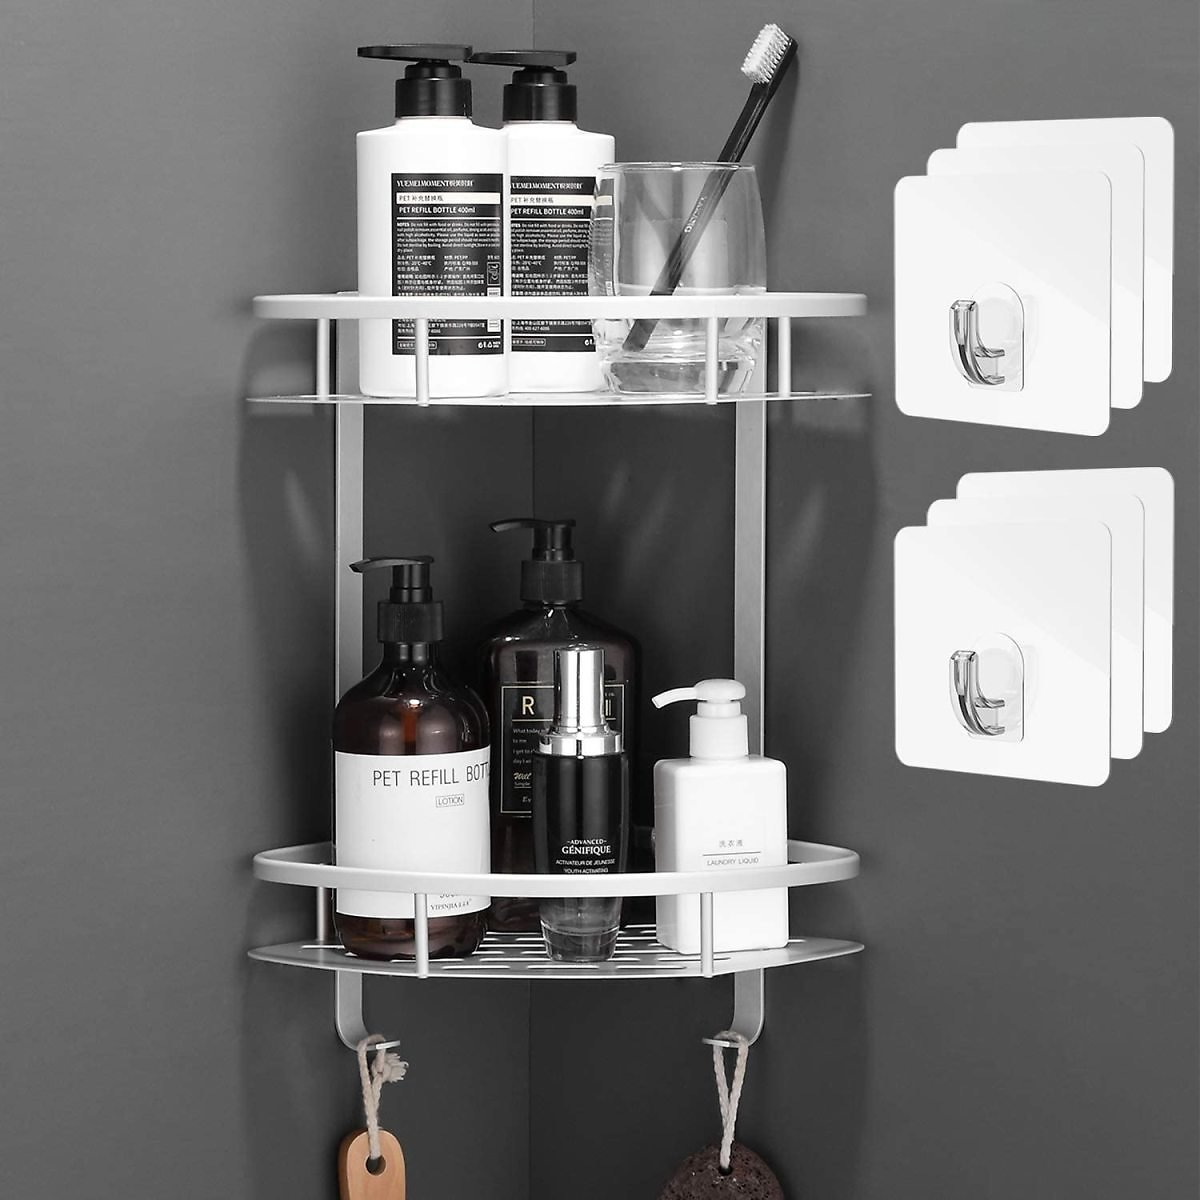 2 Tiers Corner Shower Caddy, Shower Organizer, Wall Mounted Aluminum Shower Shelf with Adhesive(No Drilling), Storage Rack for T